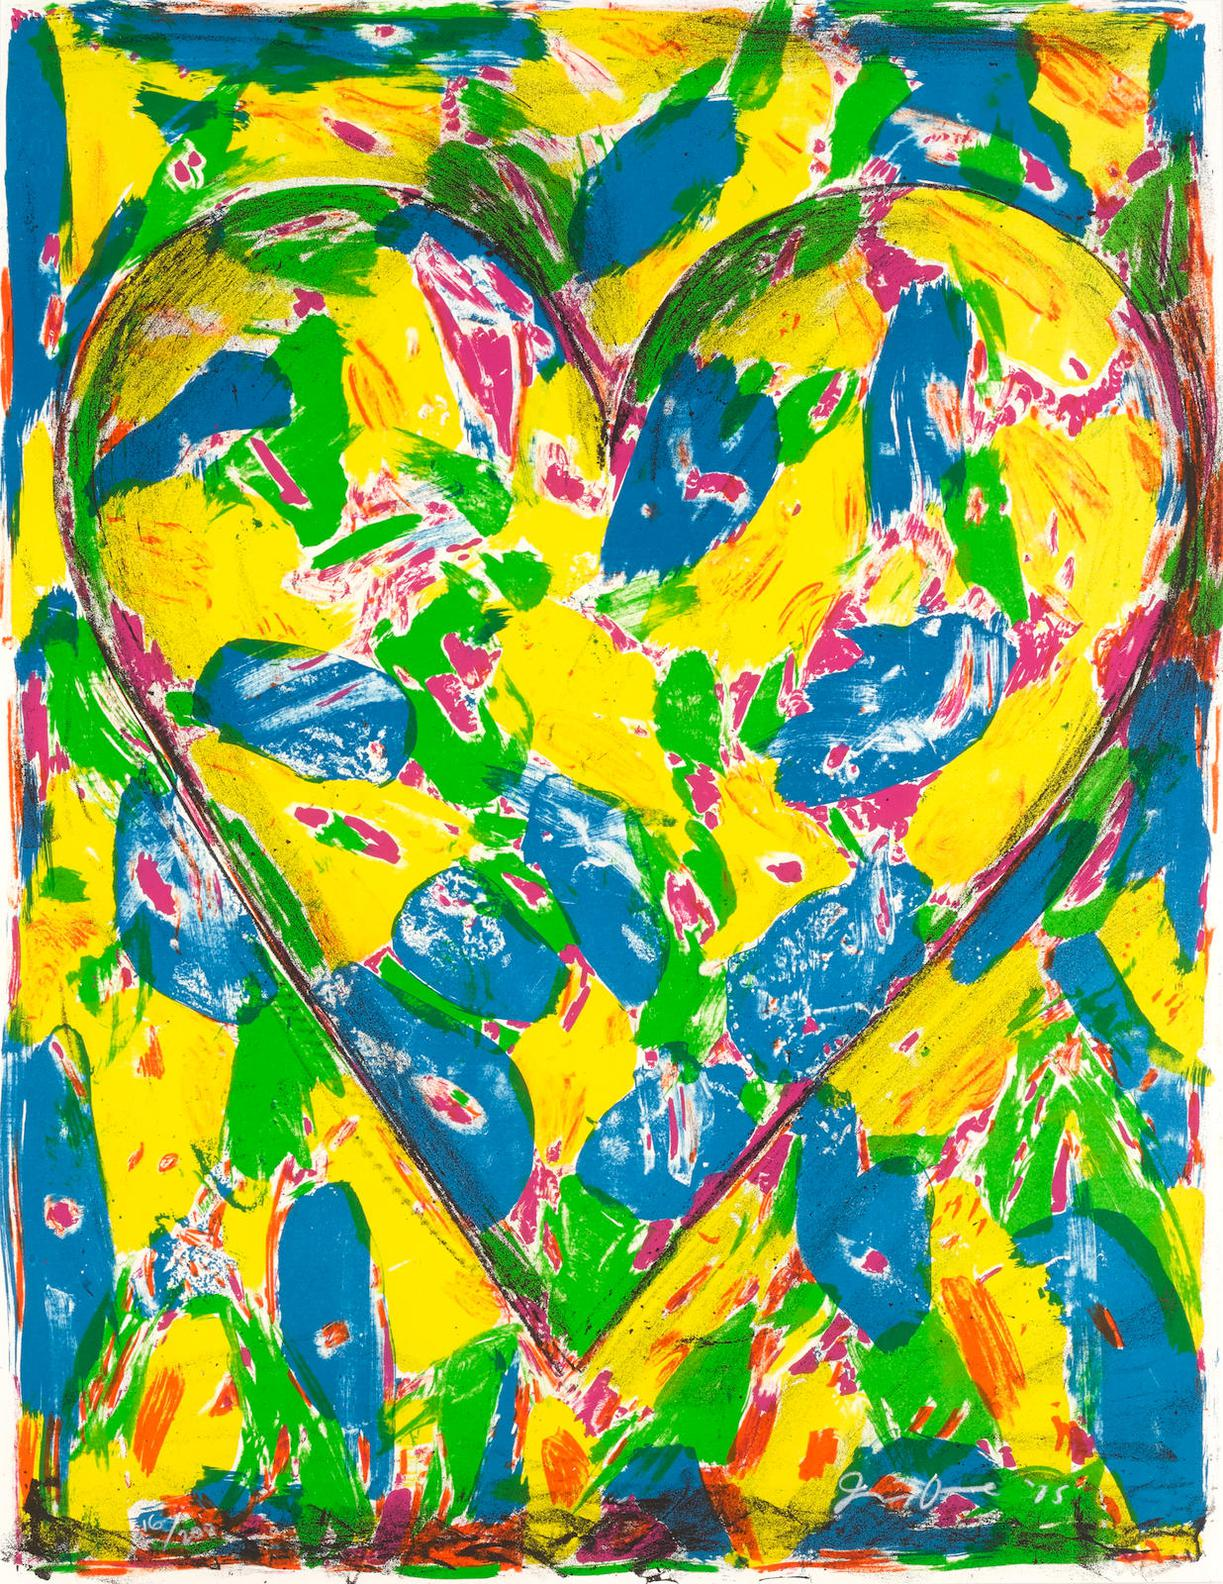 Jim Dine-The Blue Heart, From 2005 Suite-2005